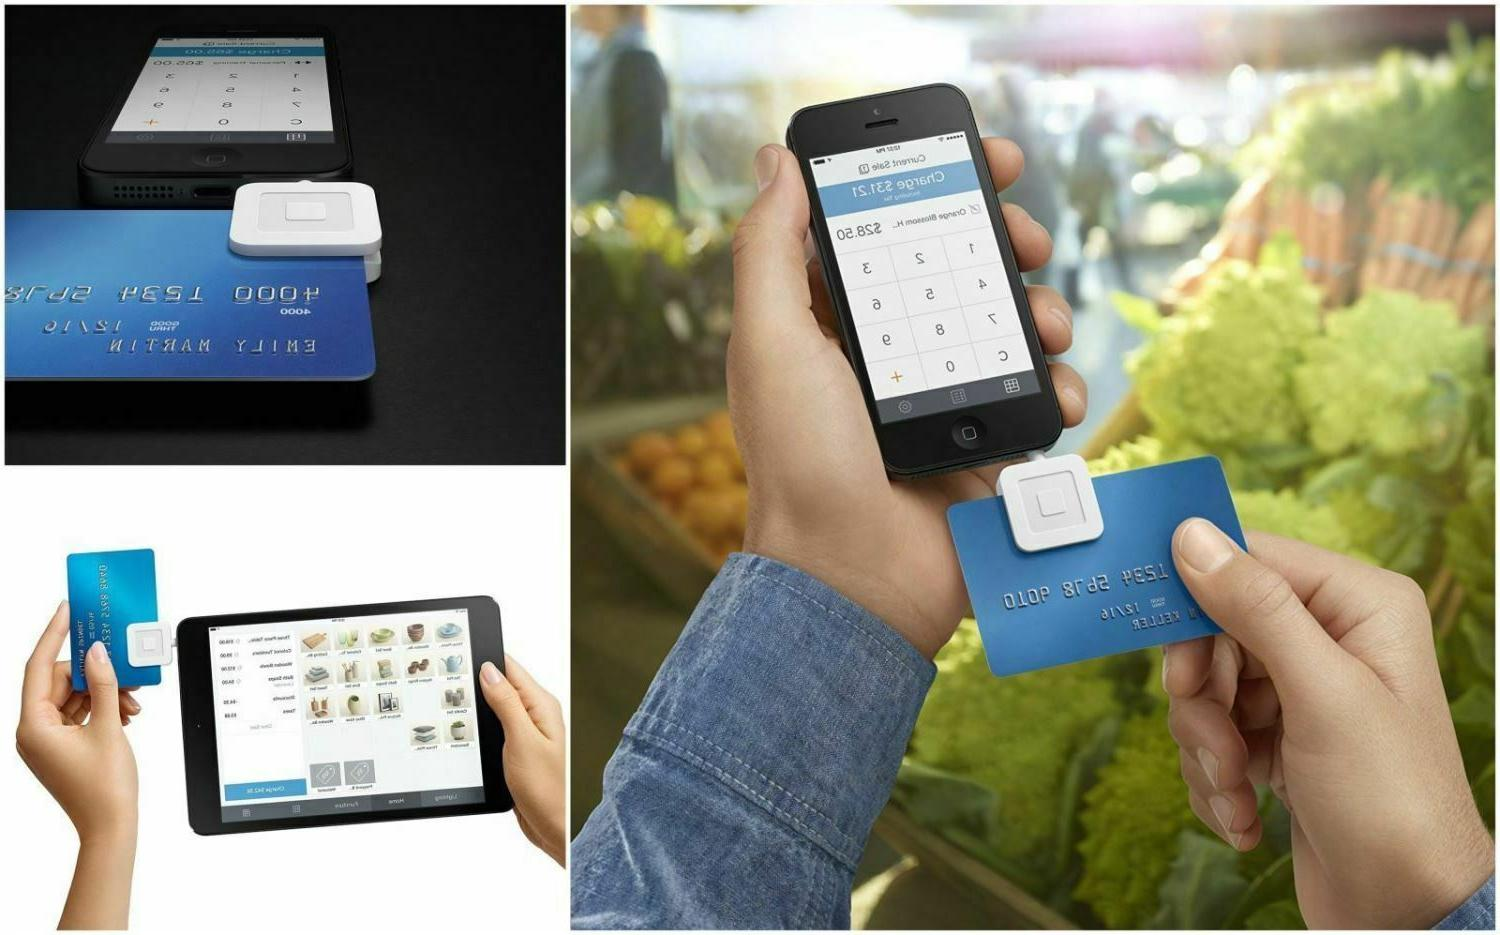 Square Mobile Debit Credit Card Reader Smart Phone Android S